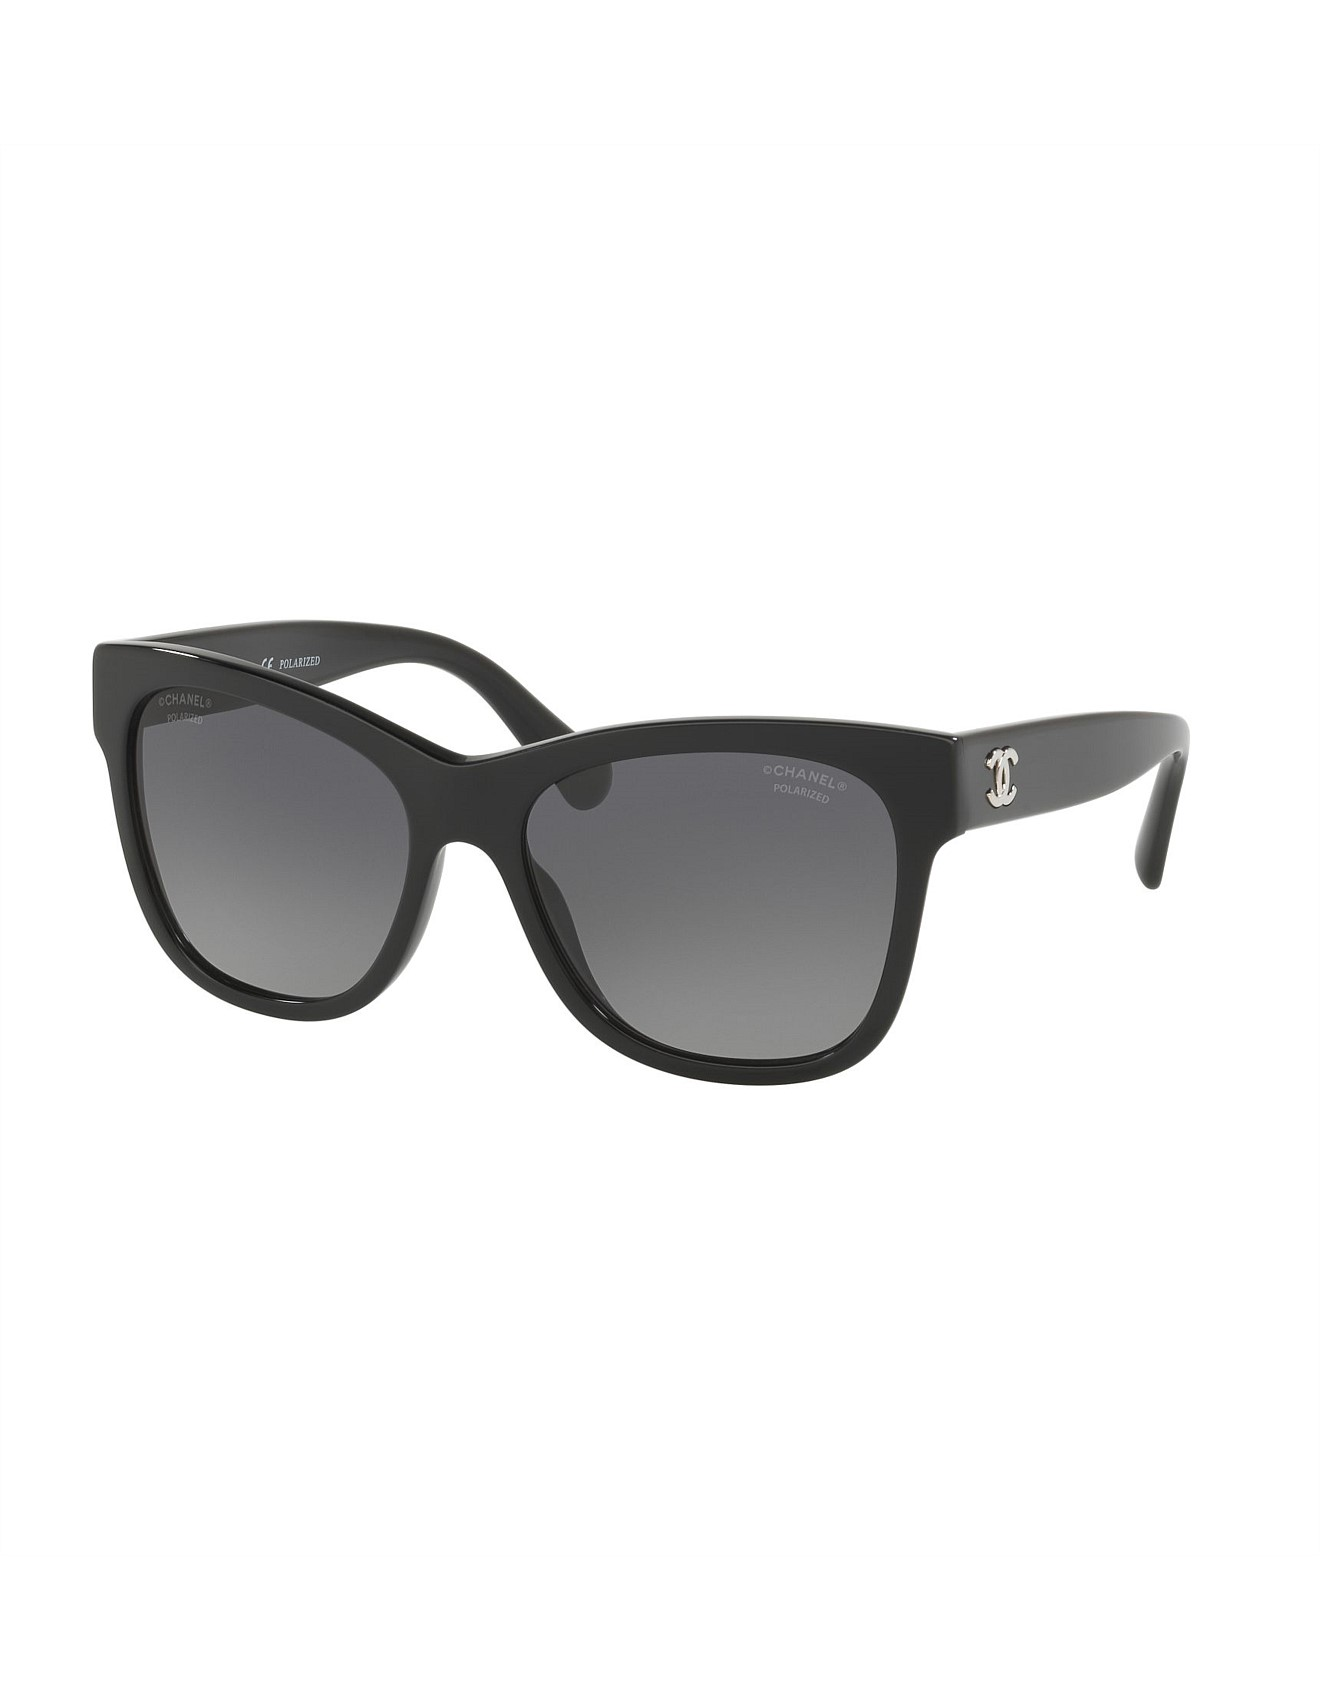 c2c30642b45d CHANEL Sunglasses